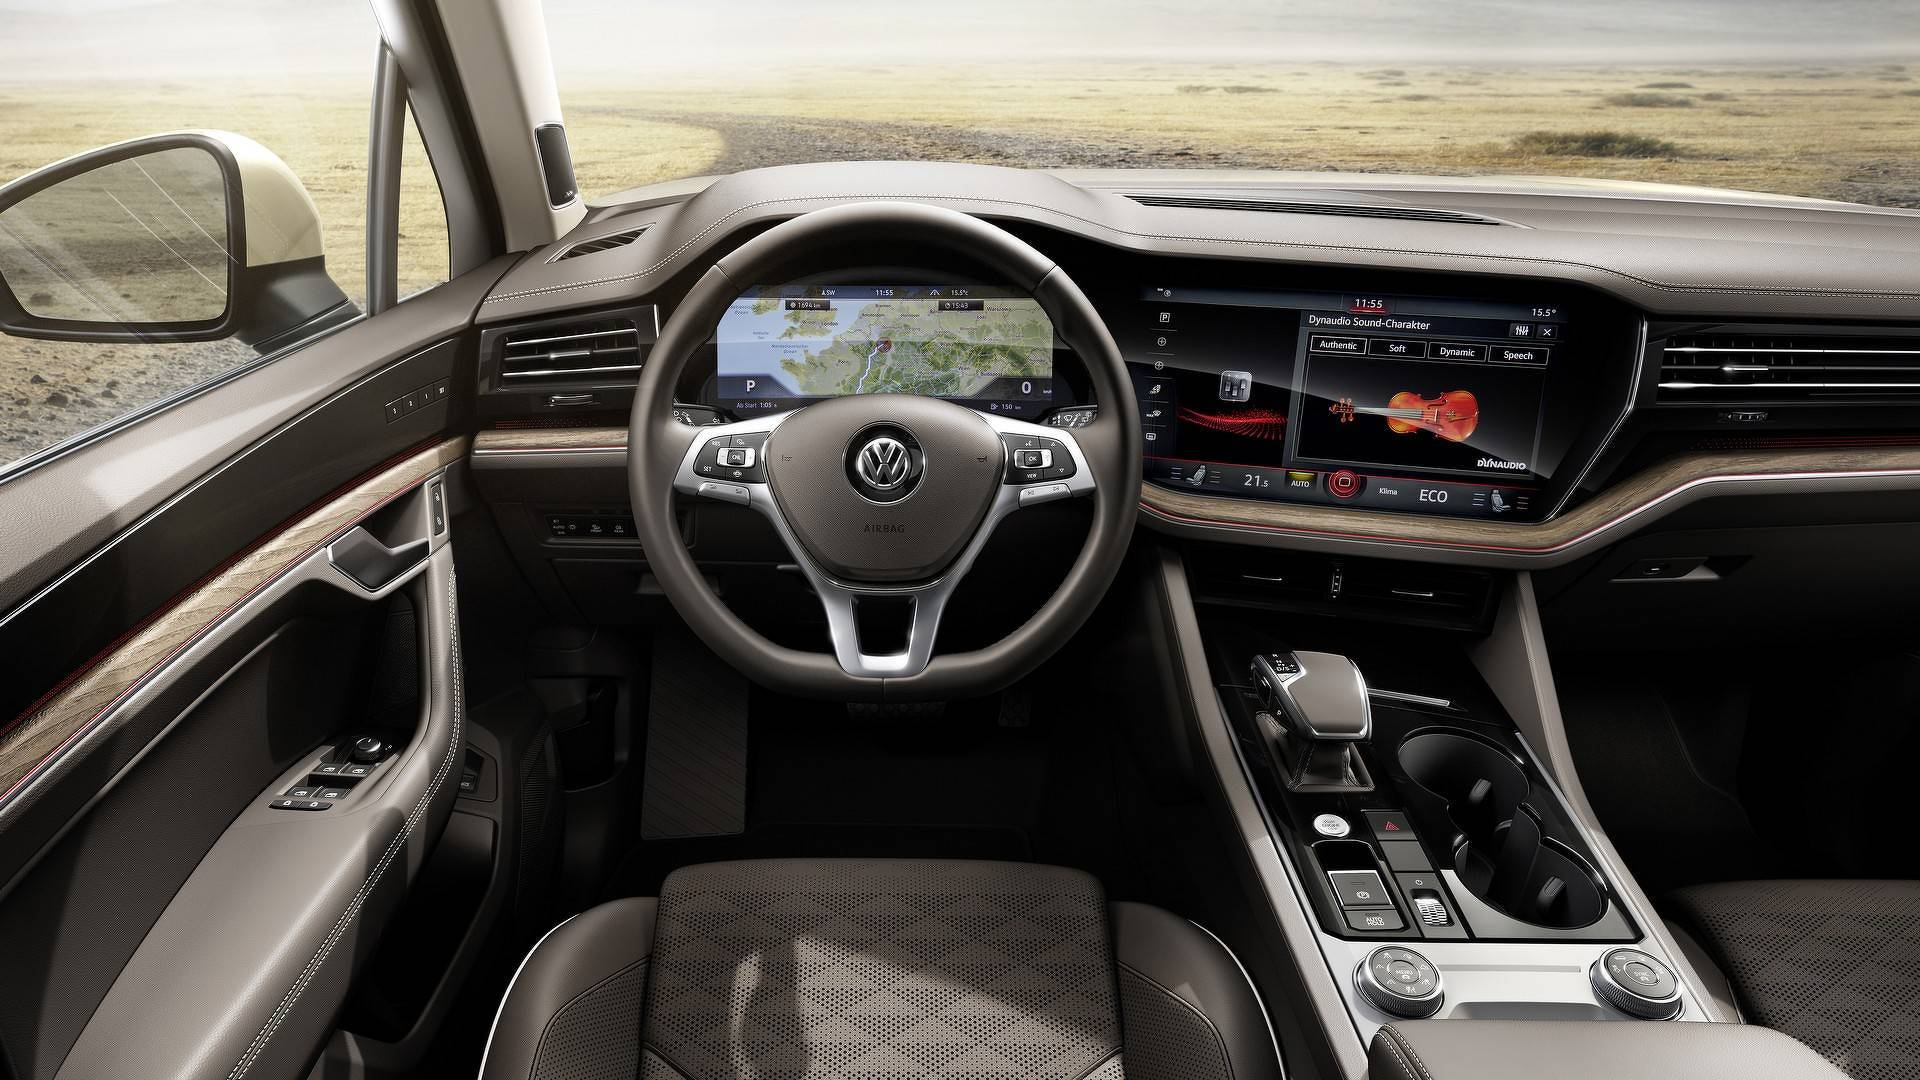 Discover Top 10 Tech Features Of The 2019 Vw Touareg